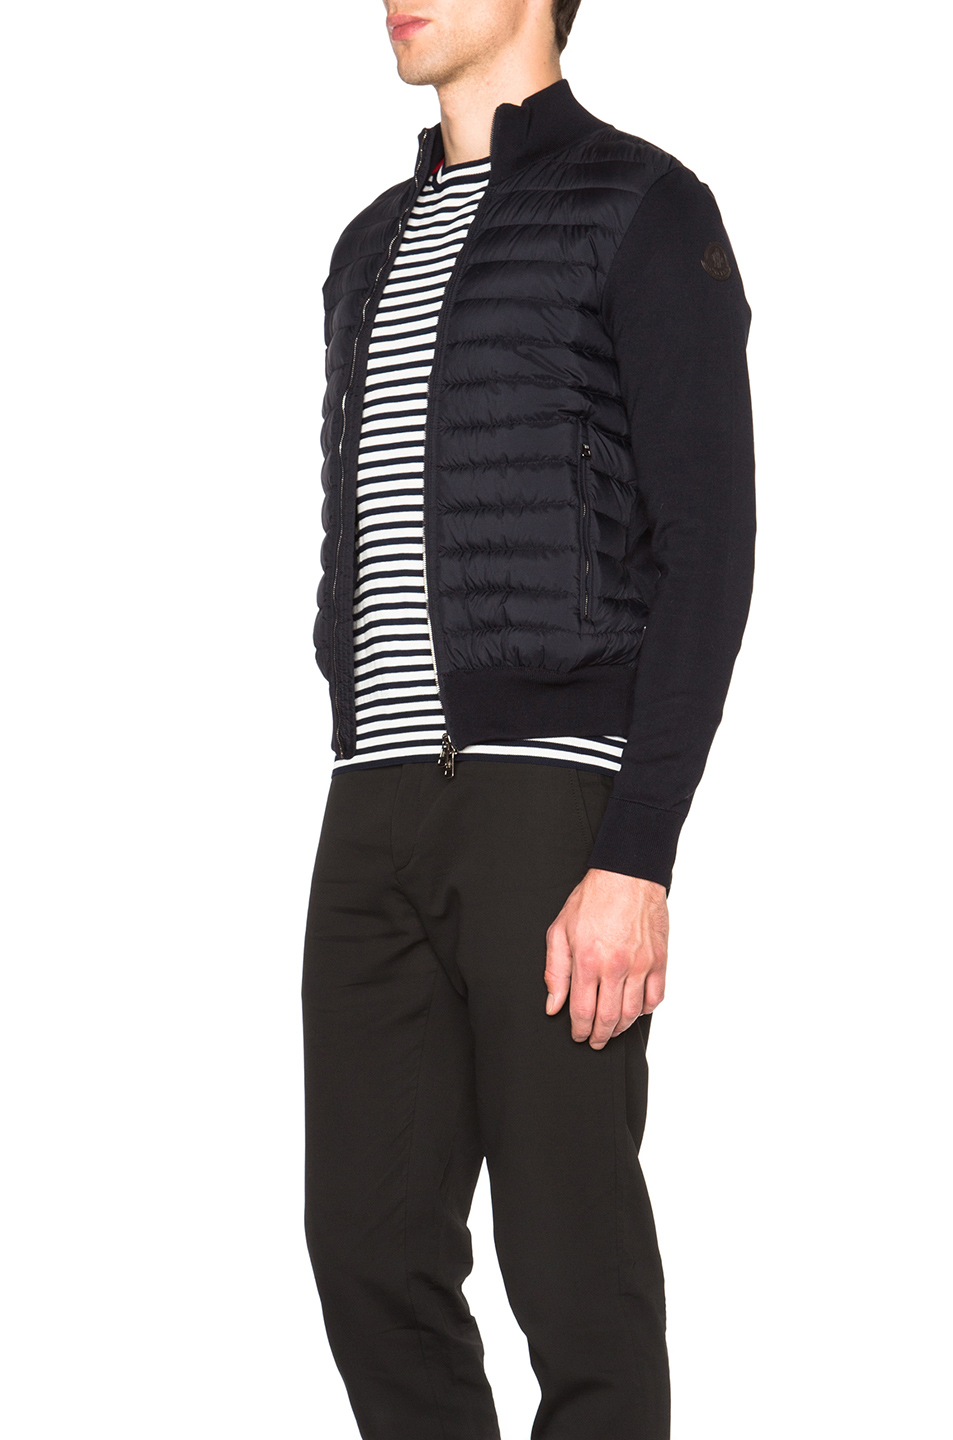 5f4e1aea0c0b Buy Original Moncler Maglia Tricot Cardigan Jacket at Indonesia ...